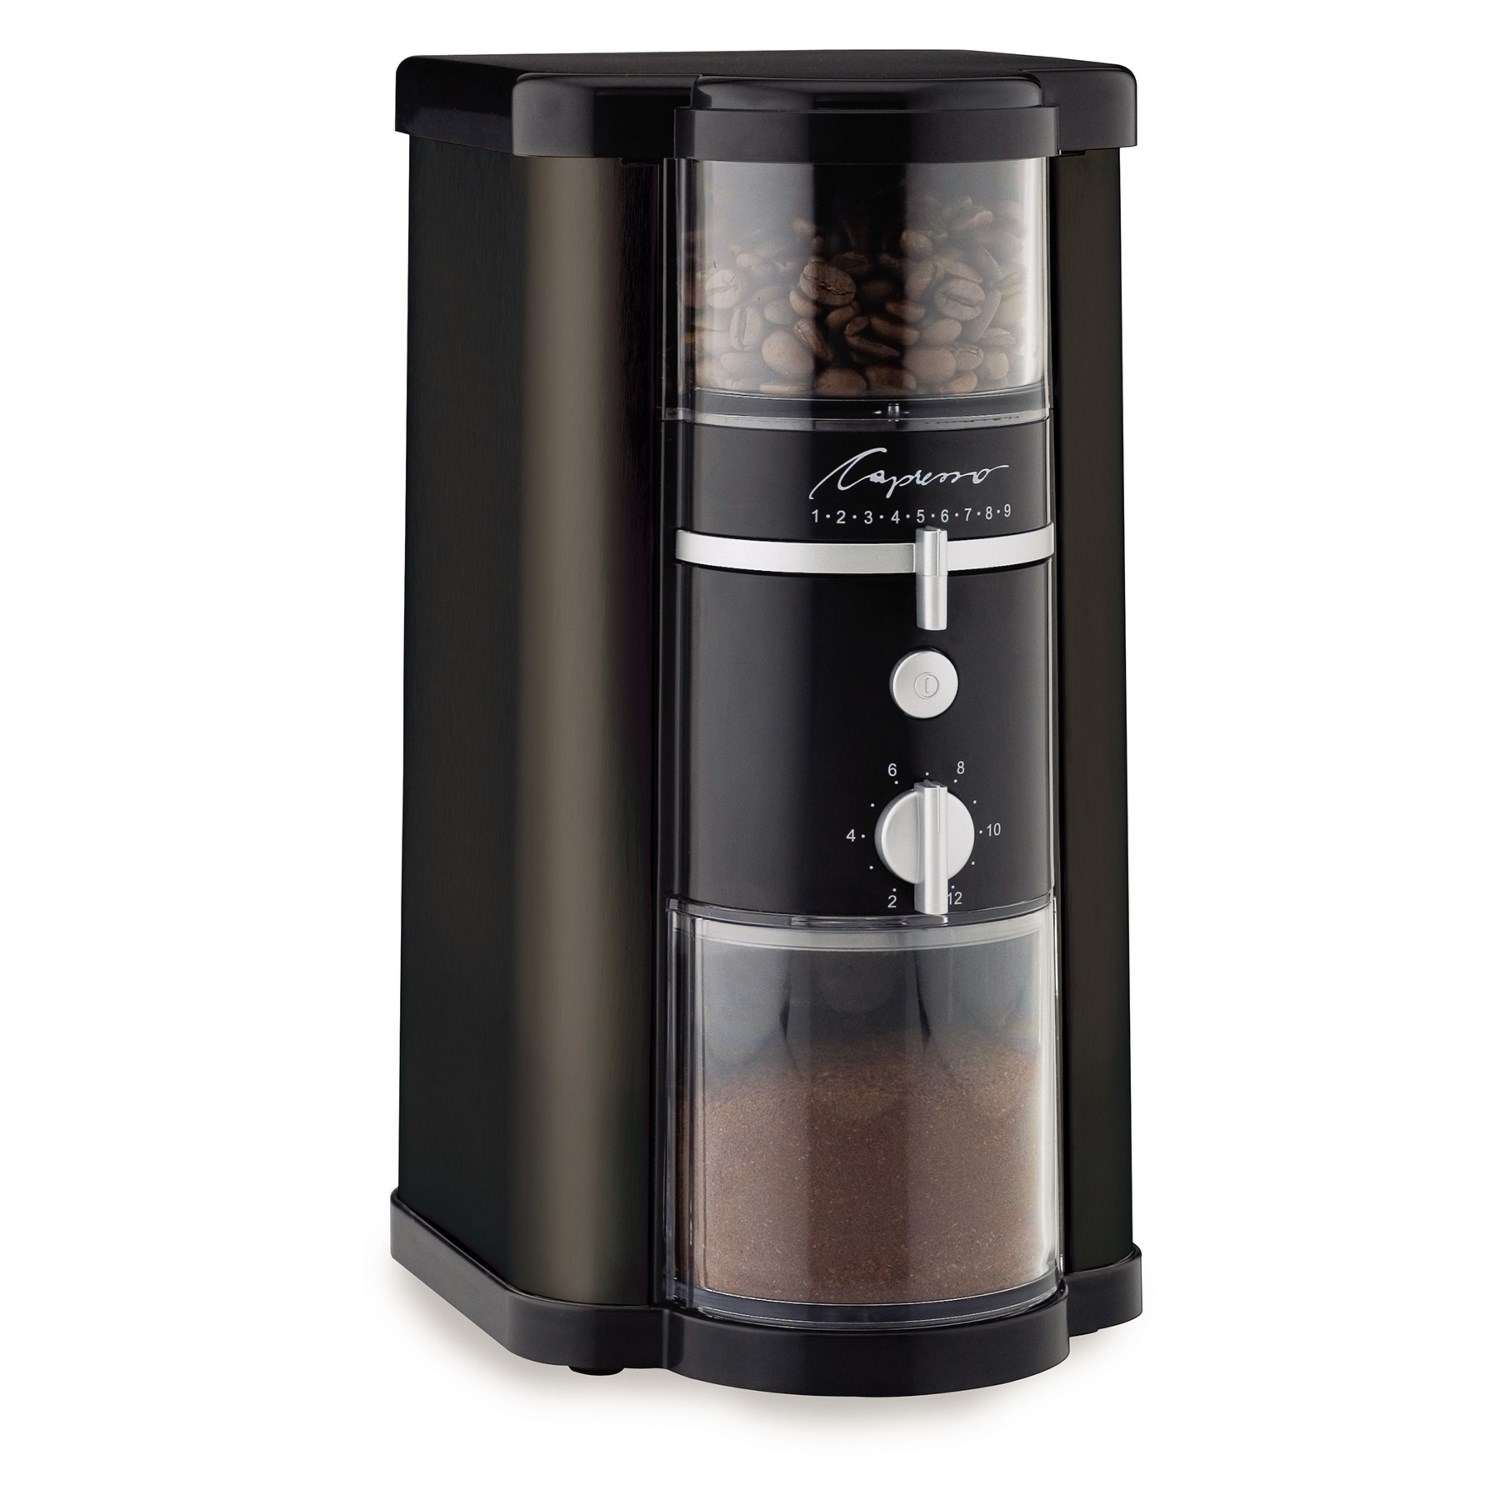 Capresso Disk Burr Coffee Grinder - Save 26%